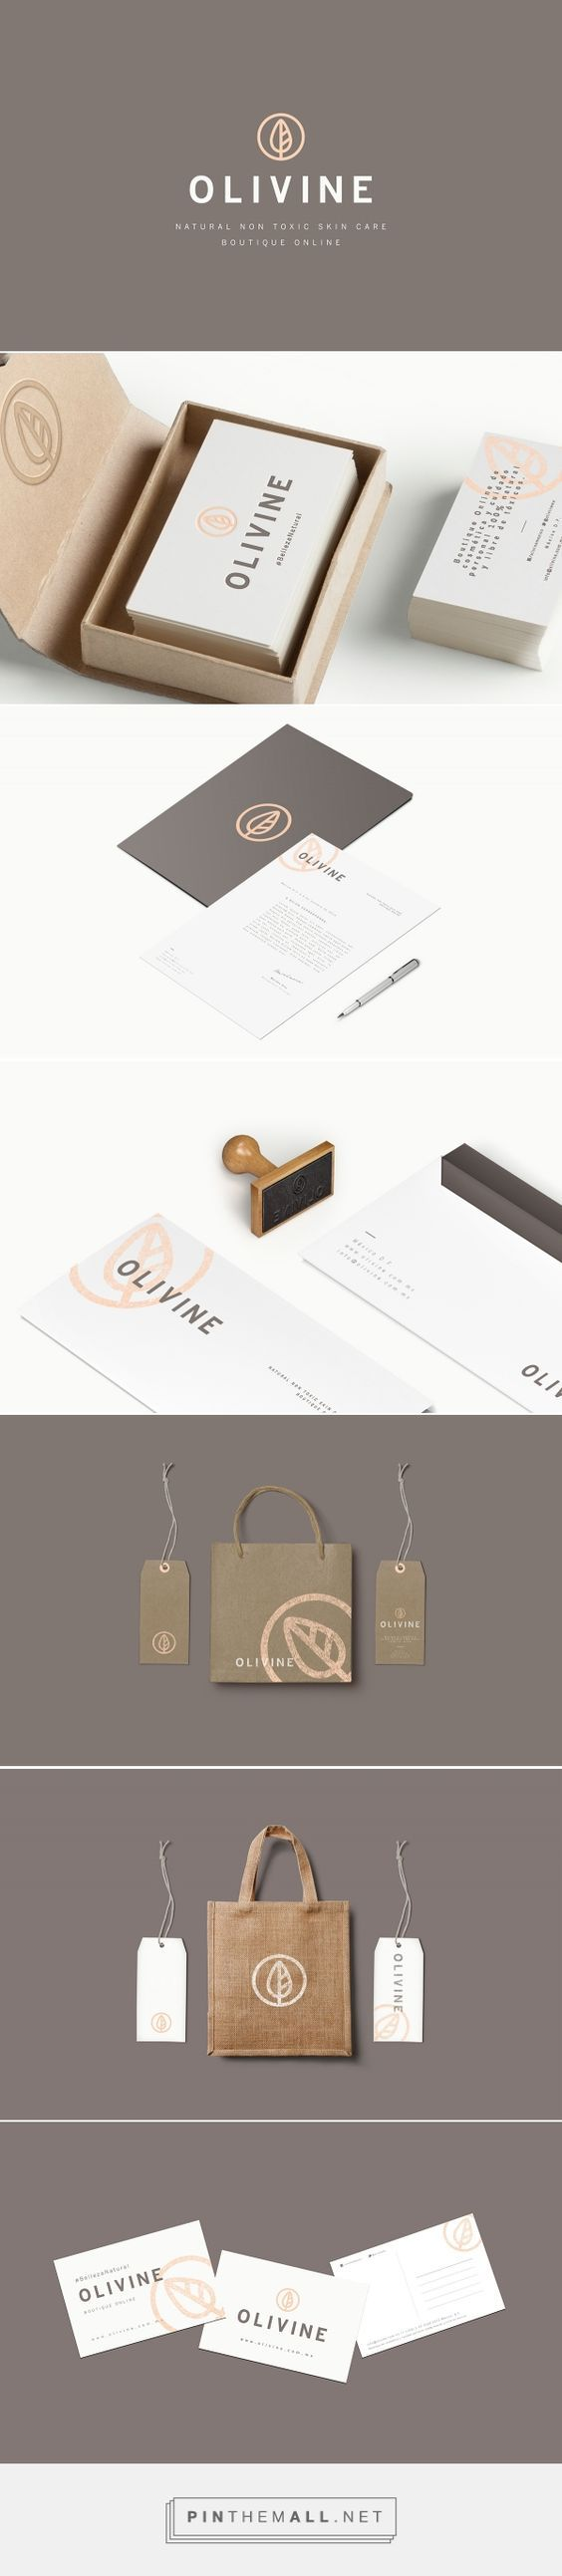 Olivine Skin Care Branding by Pepe Gil | Fivestar Branding – Design and Branding Agency & Inspiration Gallery